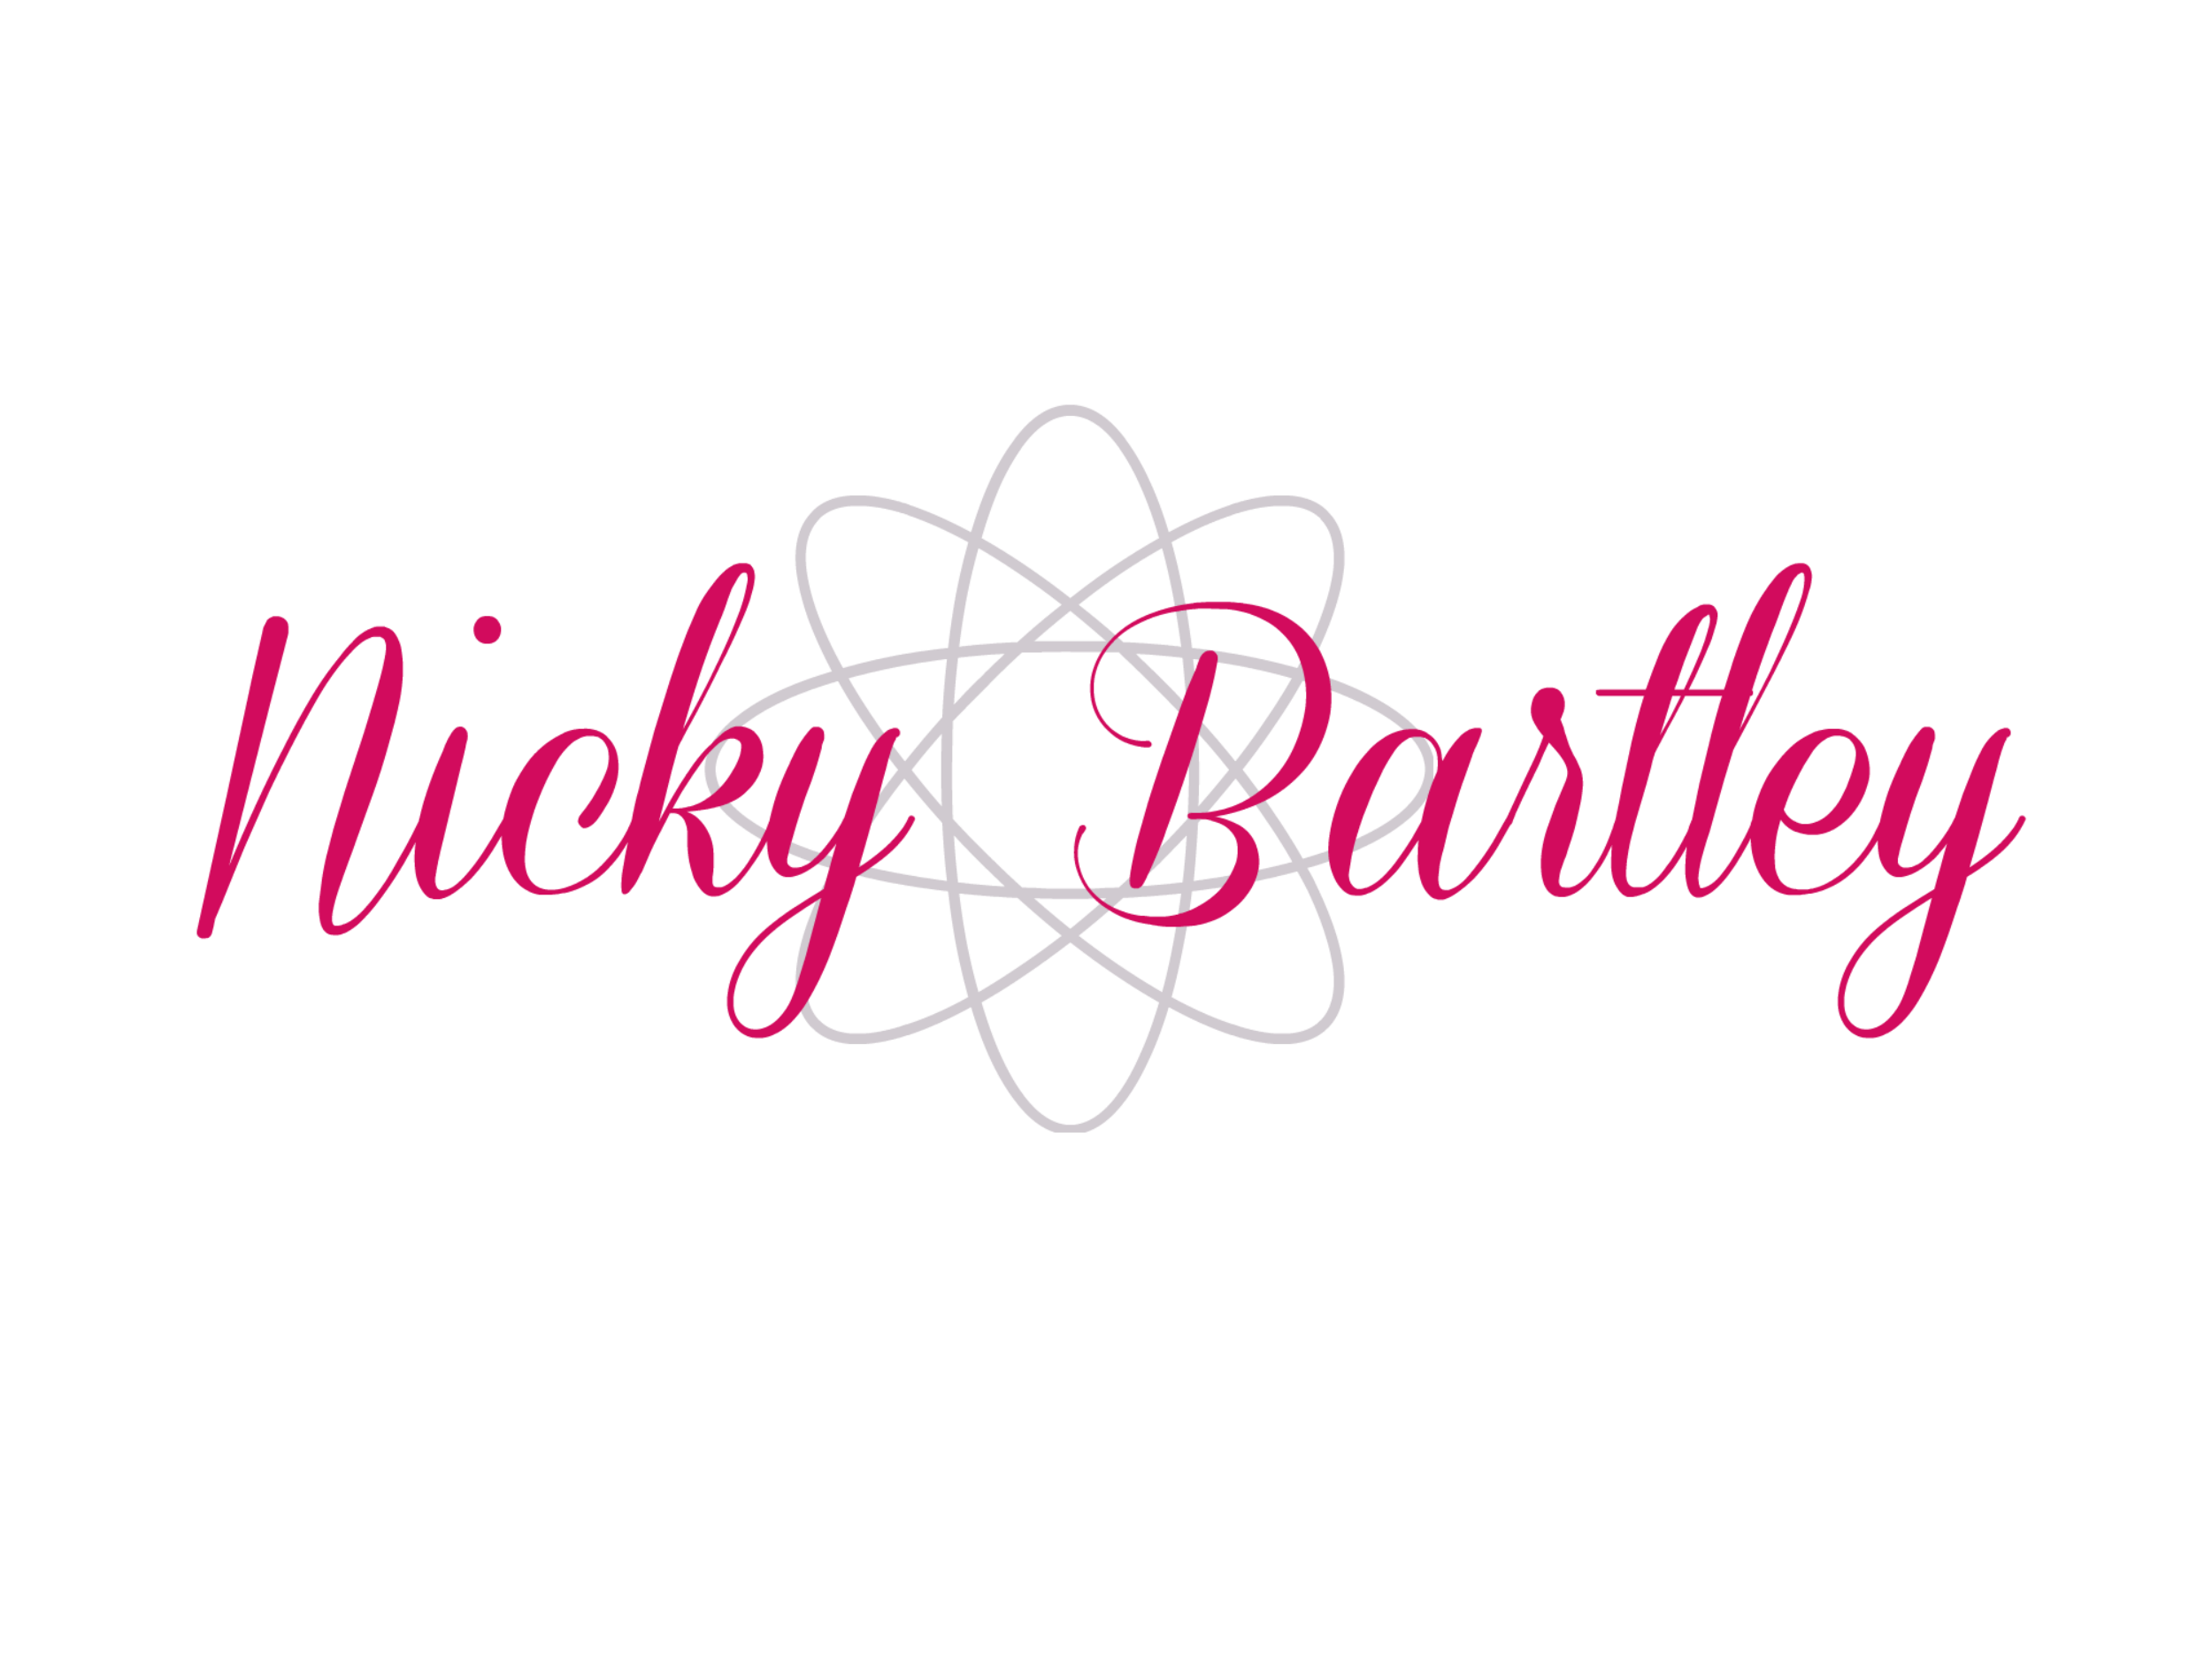 Nicky Bartley